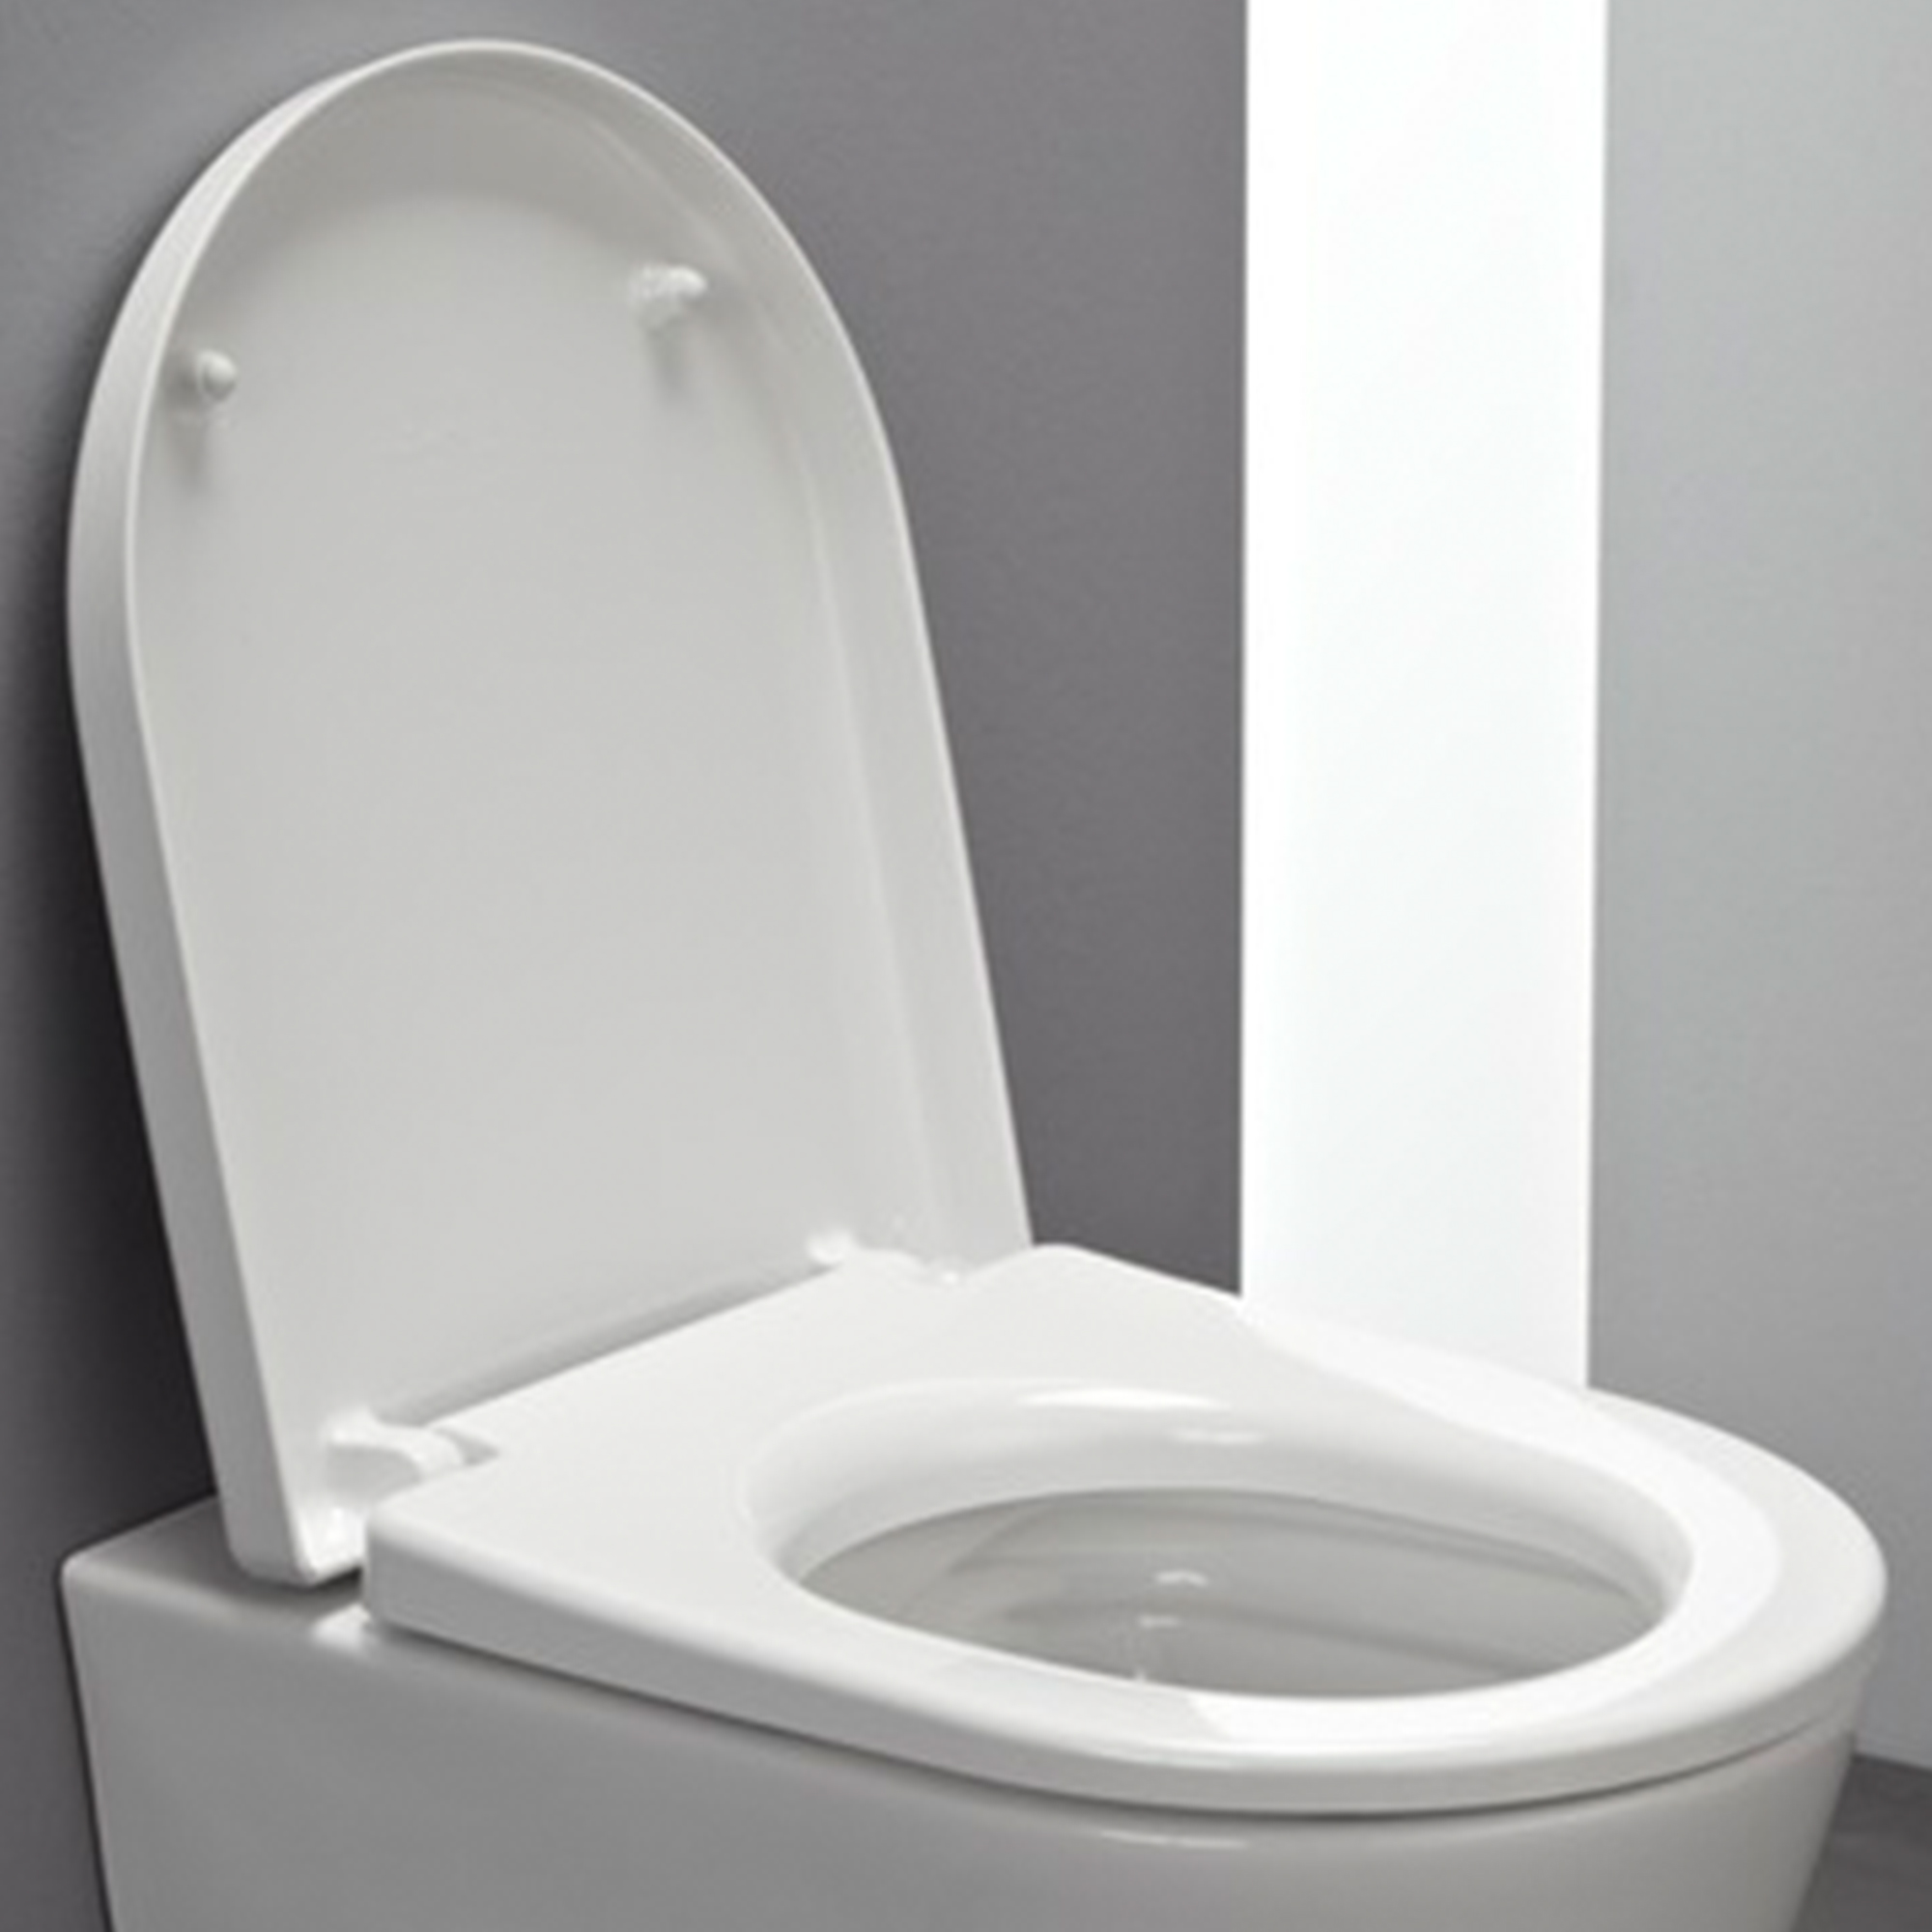 Laufen Pro Toilet Seat With Lid For